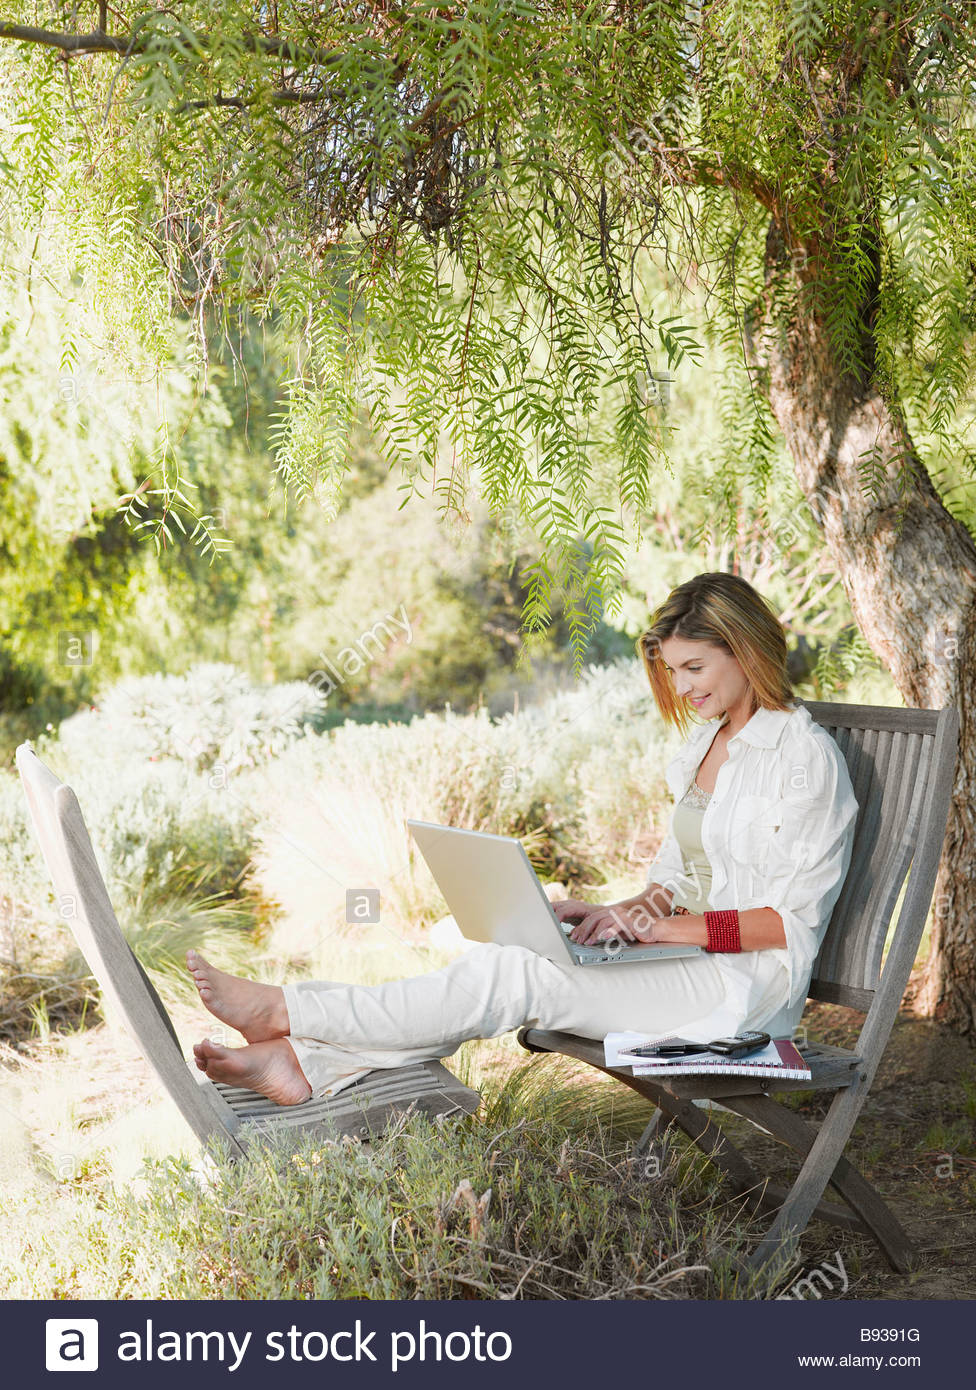 Woman using laptop in garden - Stock Image